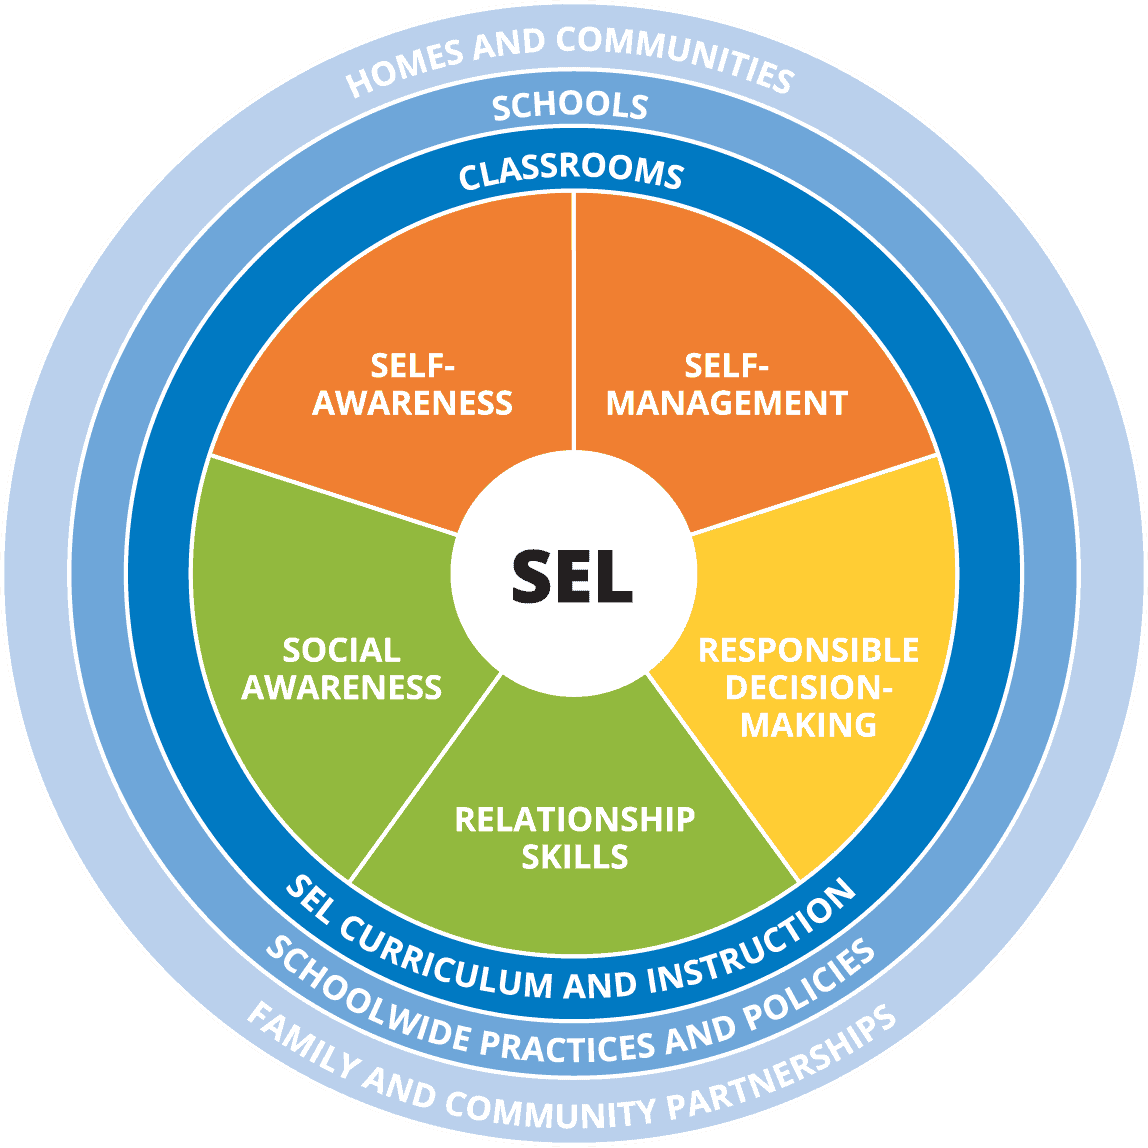 Mrs cleverworkarounds – skills and competencies of global managers.